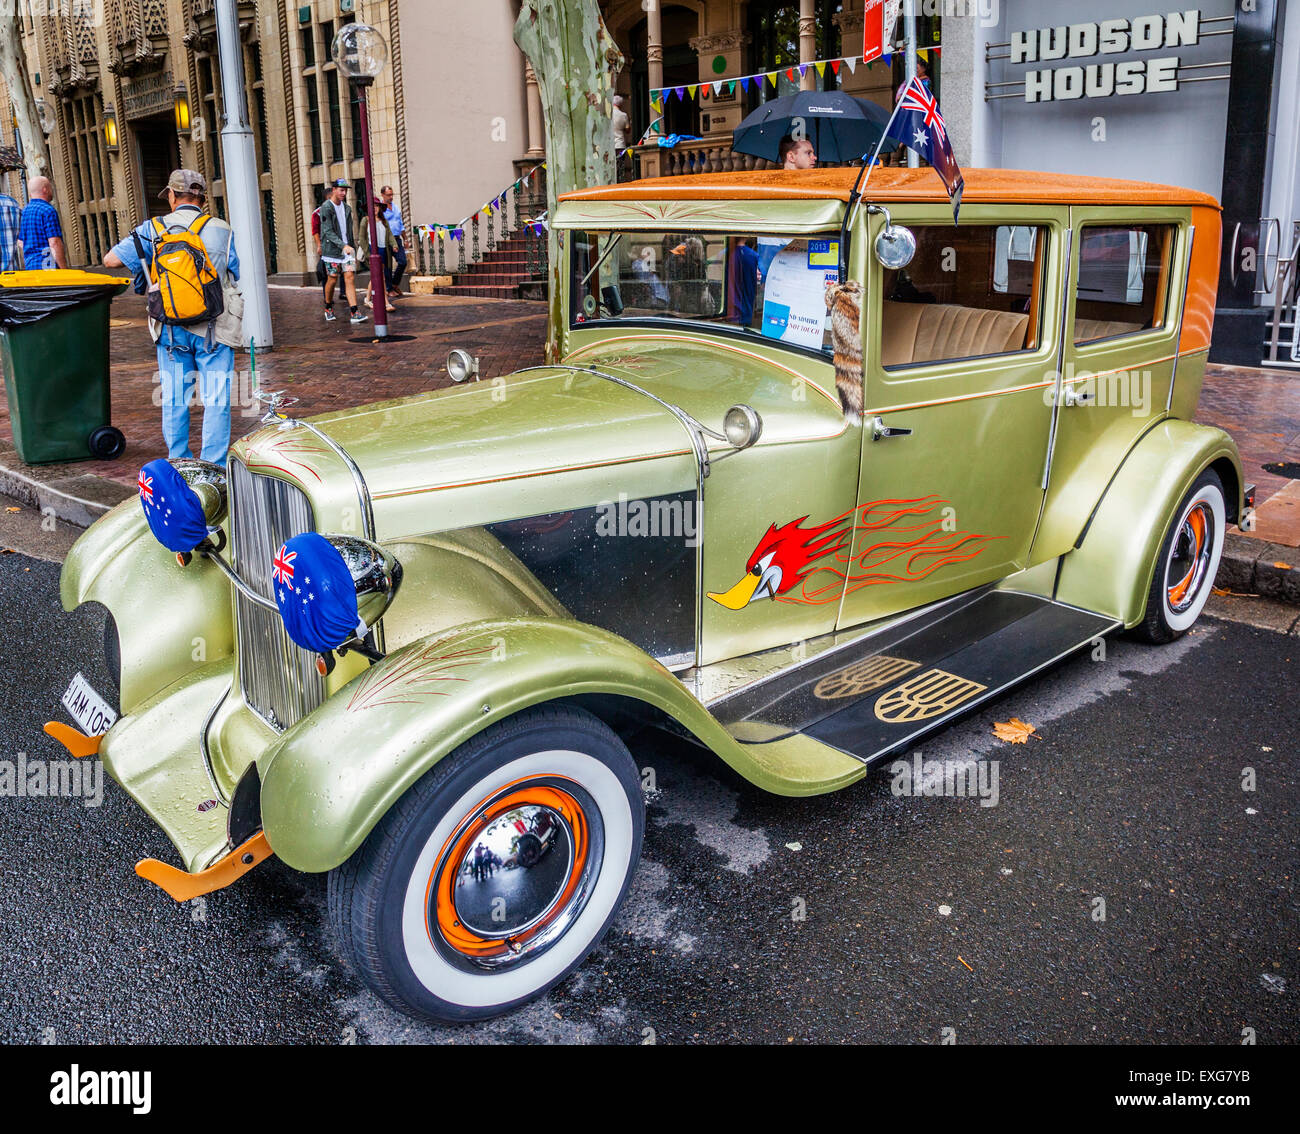 Australia, New South Wales, Sydney, CARnivale, classic 1928 Essex Super Six 4-Door Sedan motor car, exhibited in - Stock Image